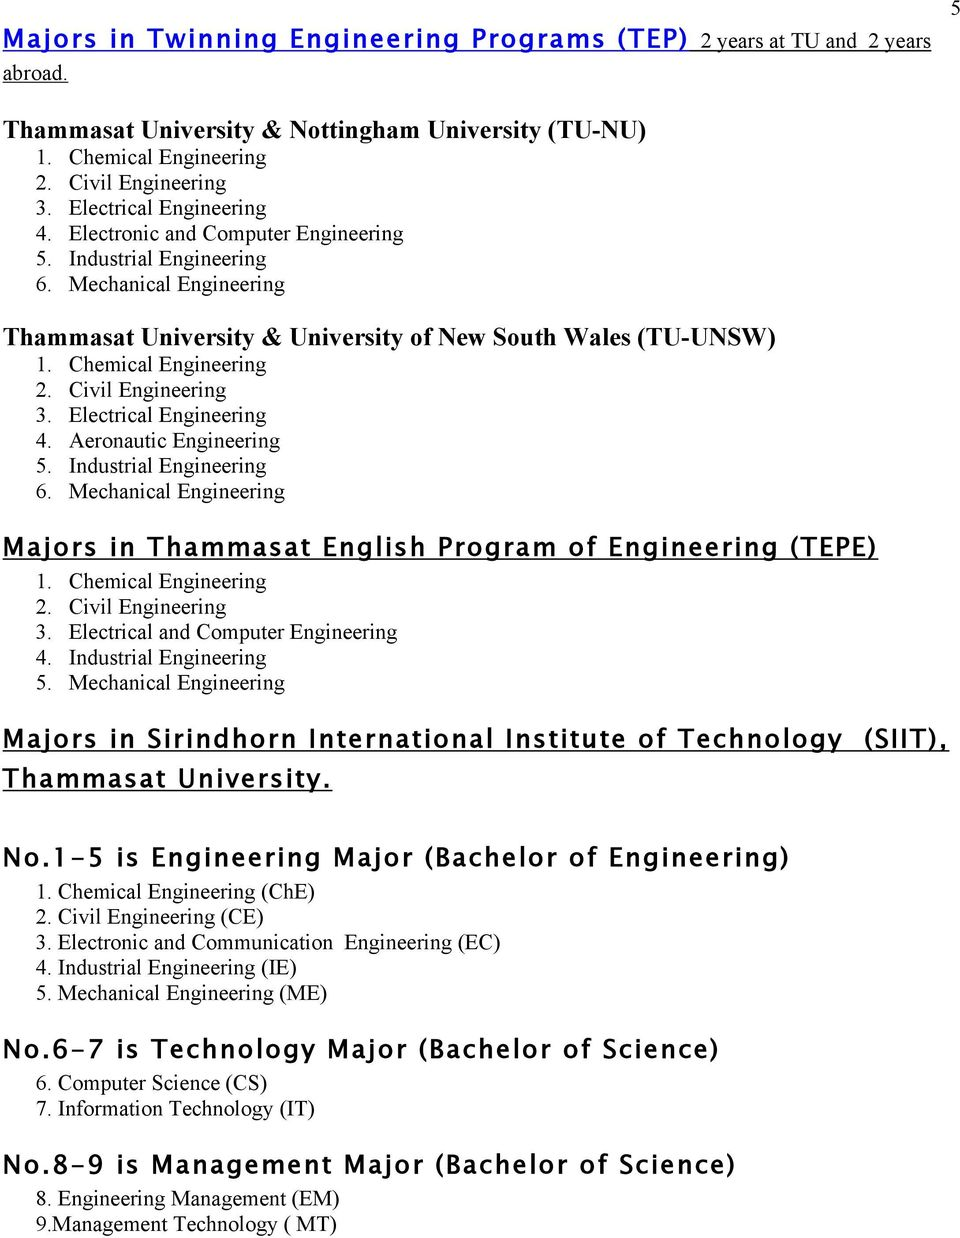 Chemical 2. Civil 3. Electrical and Computer 4. Industrial 5. Mechanical Majors in Sirindhorn International Institute of Technology (SIIT), Thammasat University. No.1-5 is Major (Bachelor of ) 1.